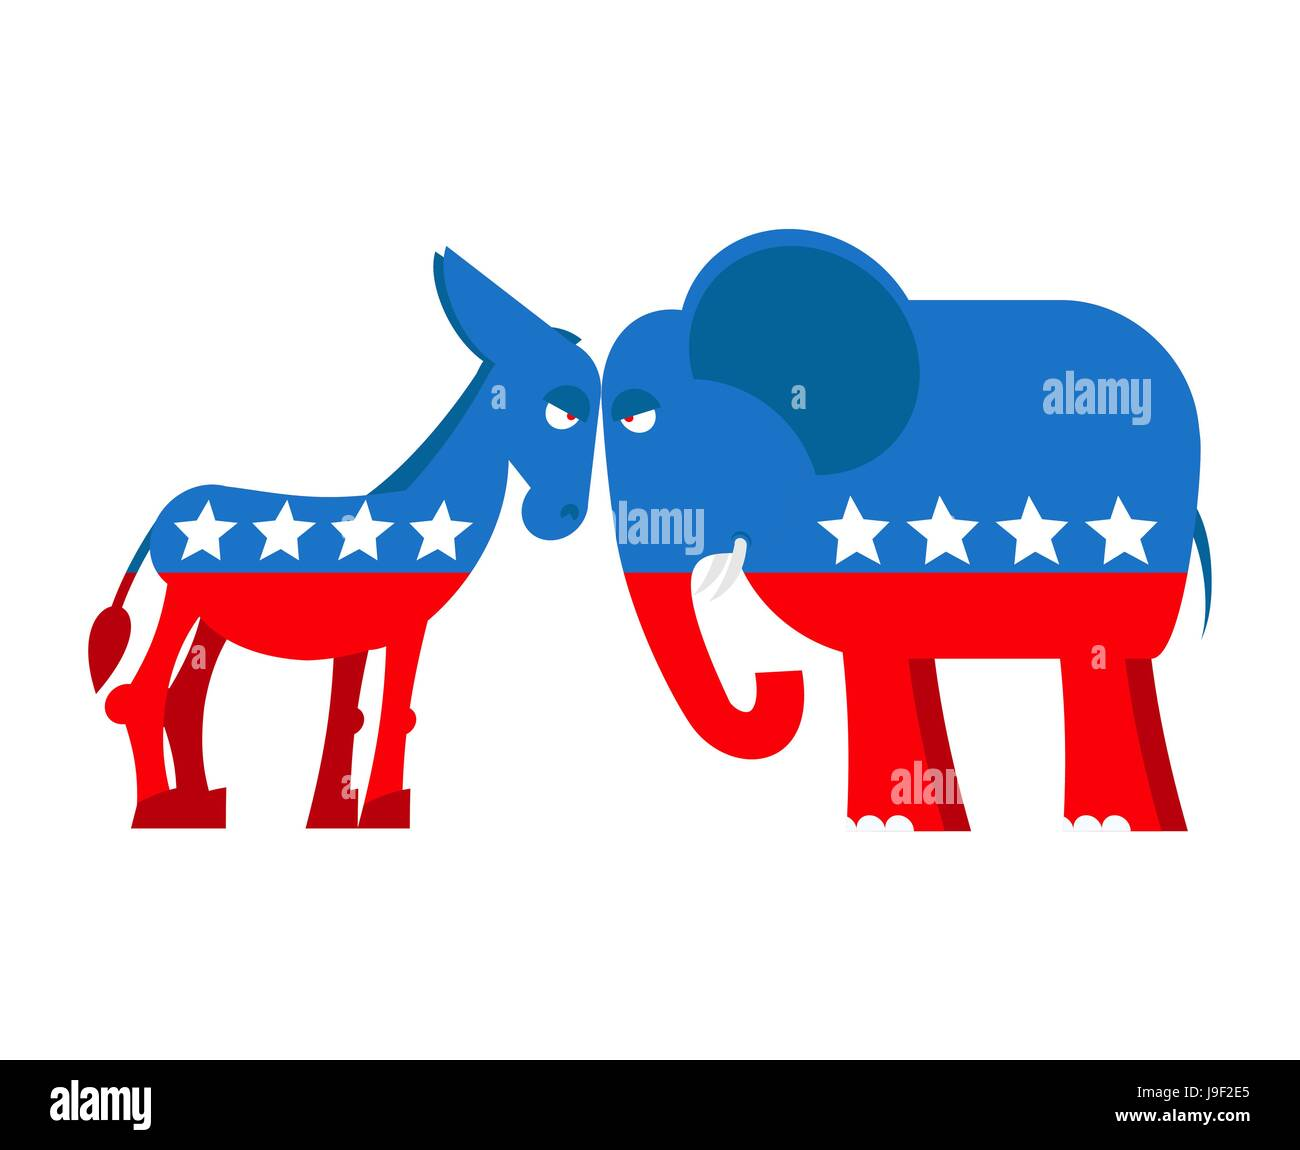 Donkey and elephant symbols of political parties in america usa donkey and elephant symbols of political parties in america usa elections democrats against republicans opposition to american policy democratic d buycottarizona